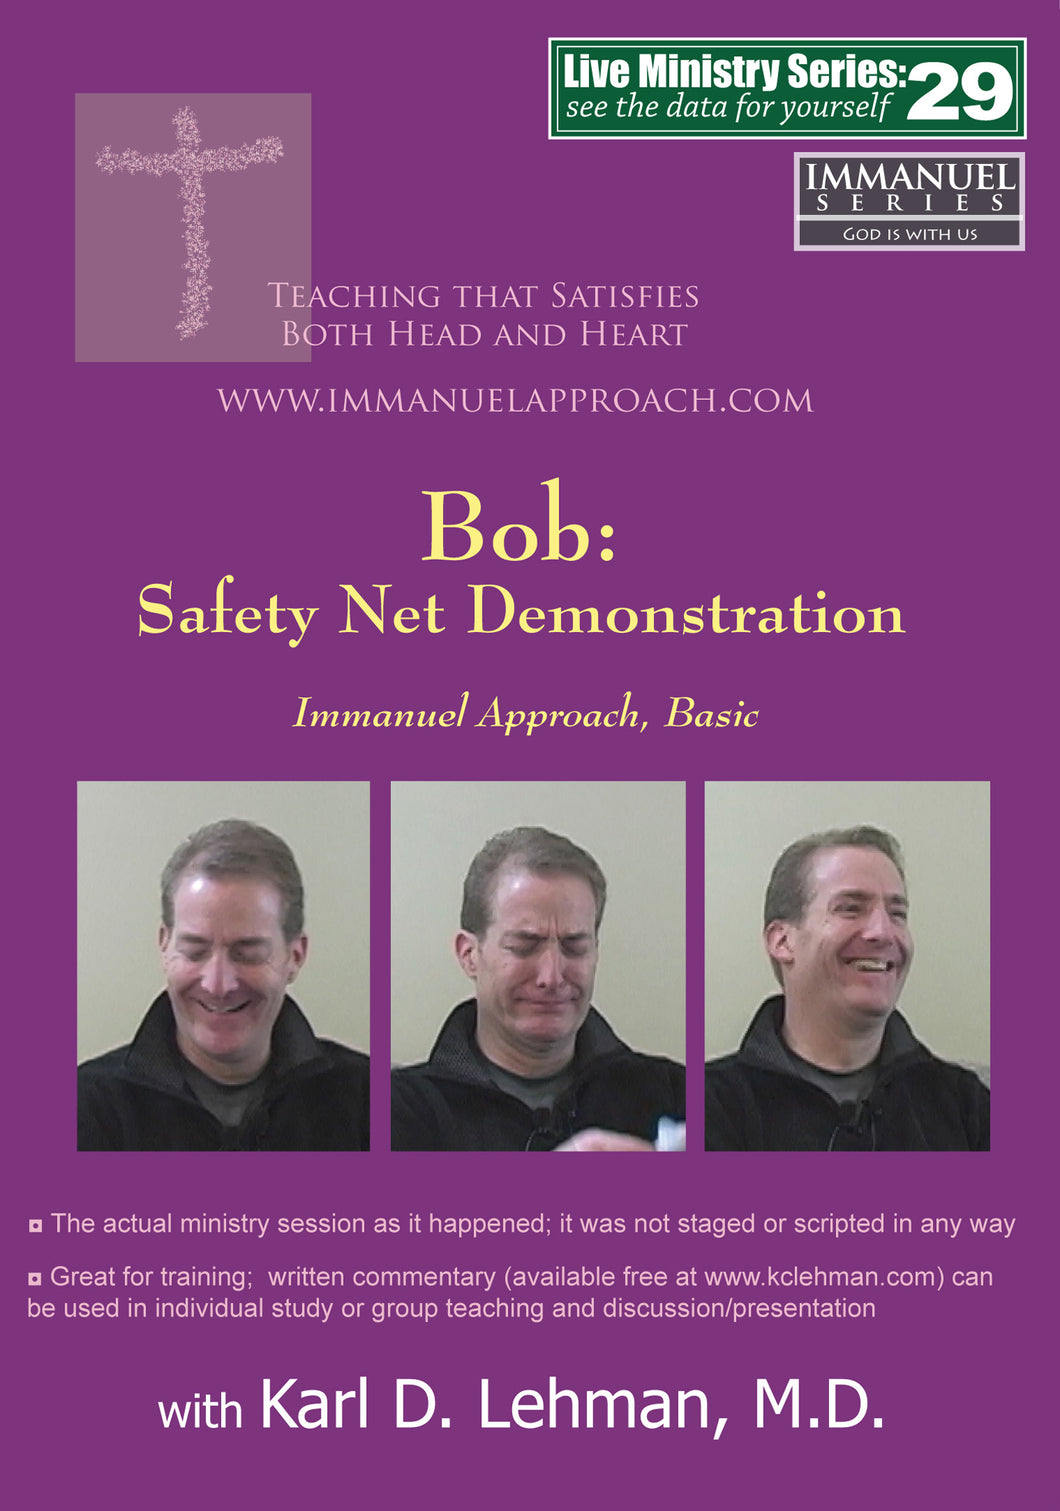 Bob: Safety Net Demonstration (LMS #29)